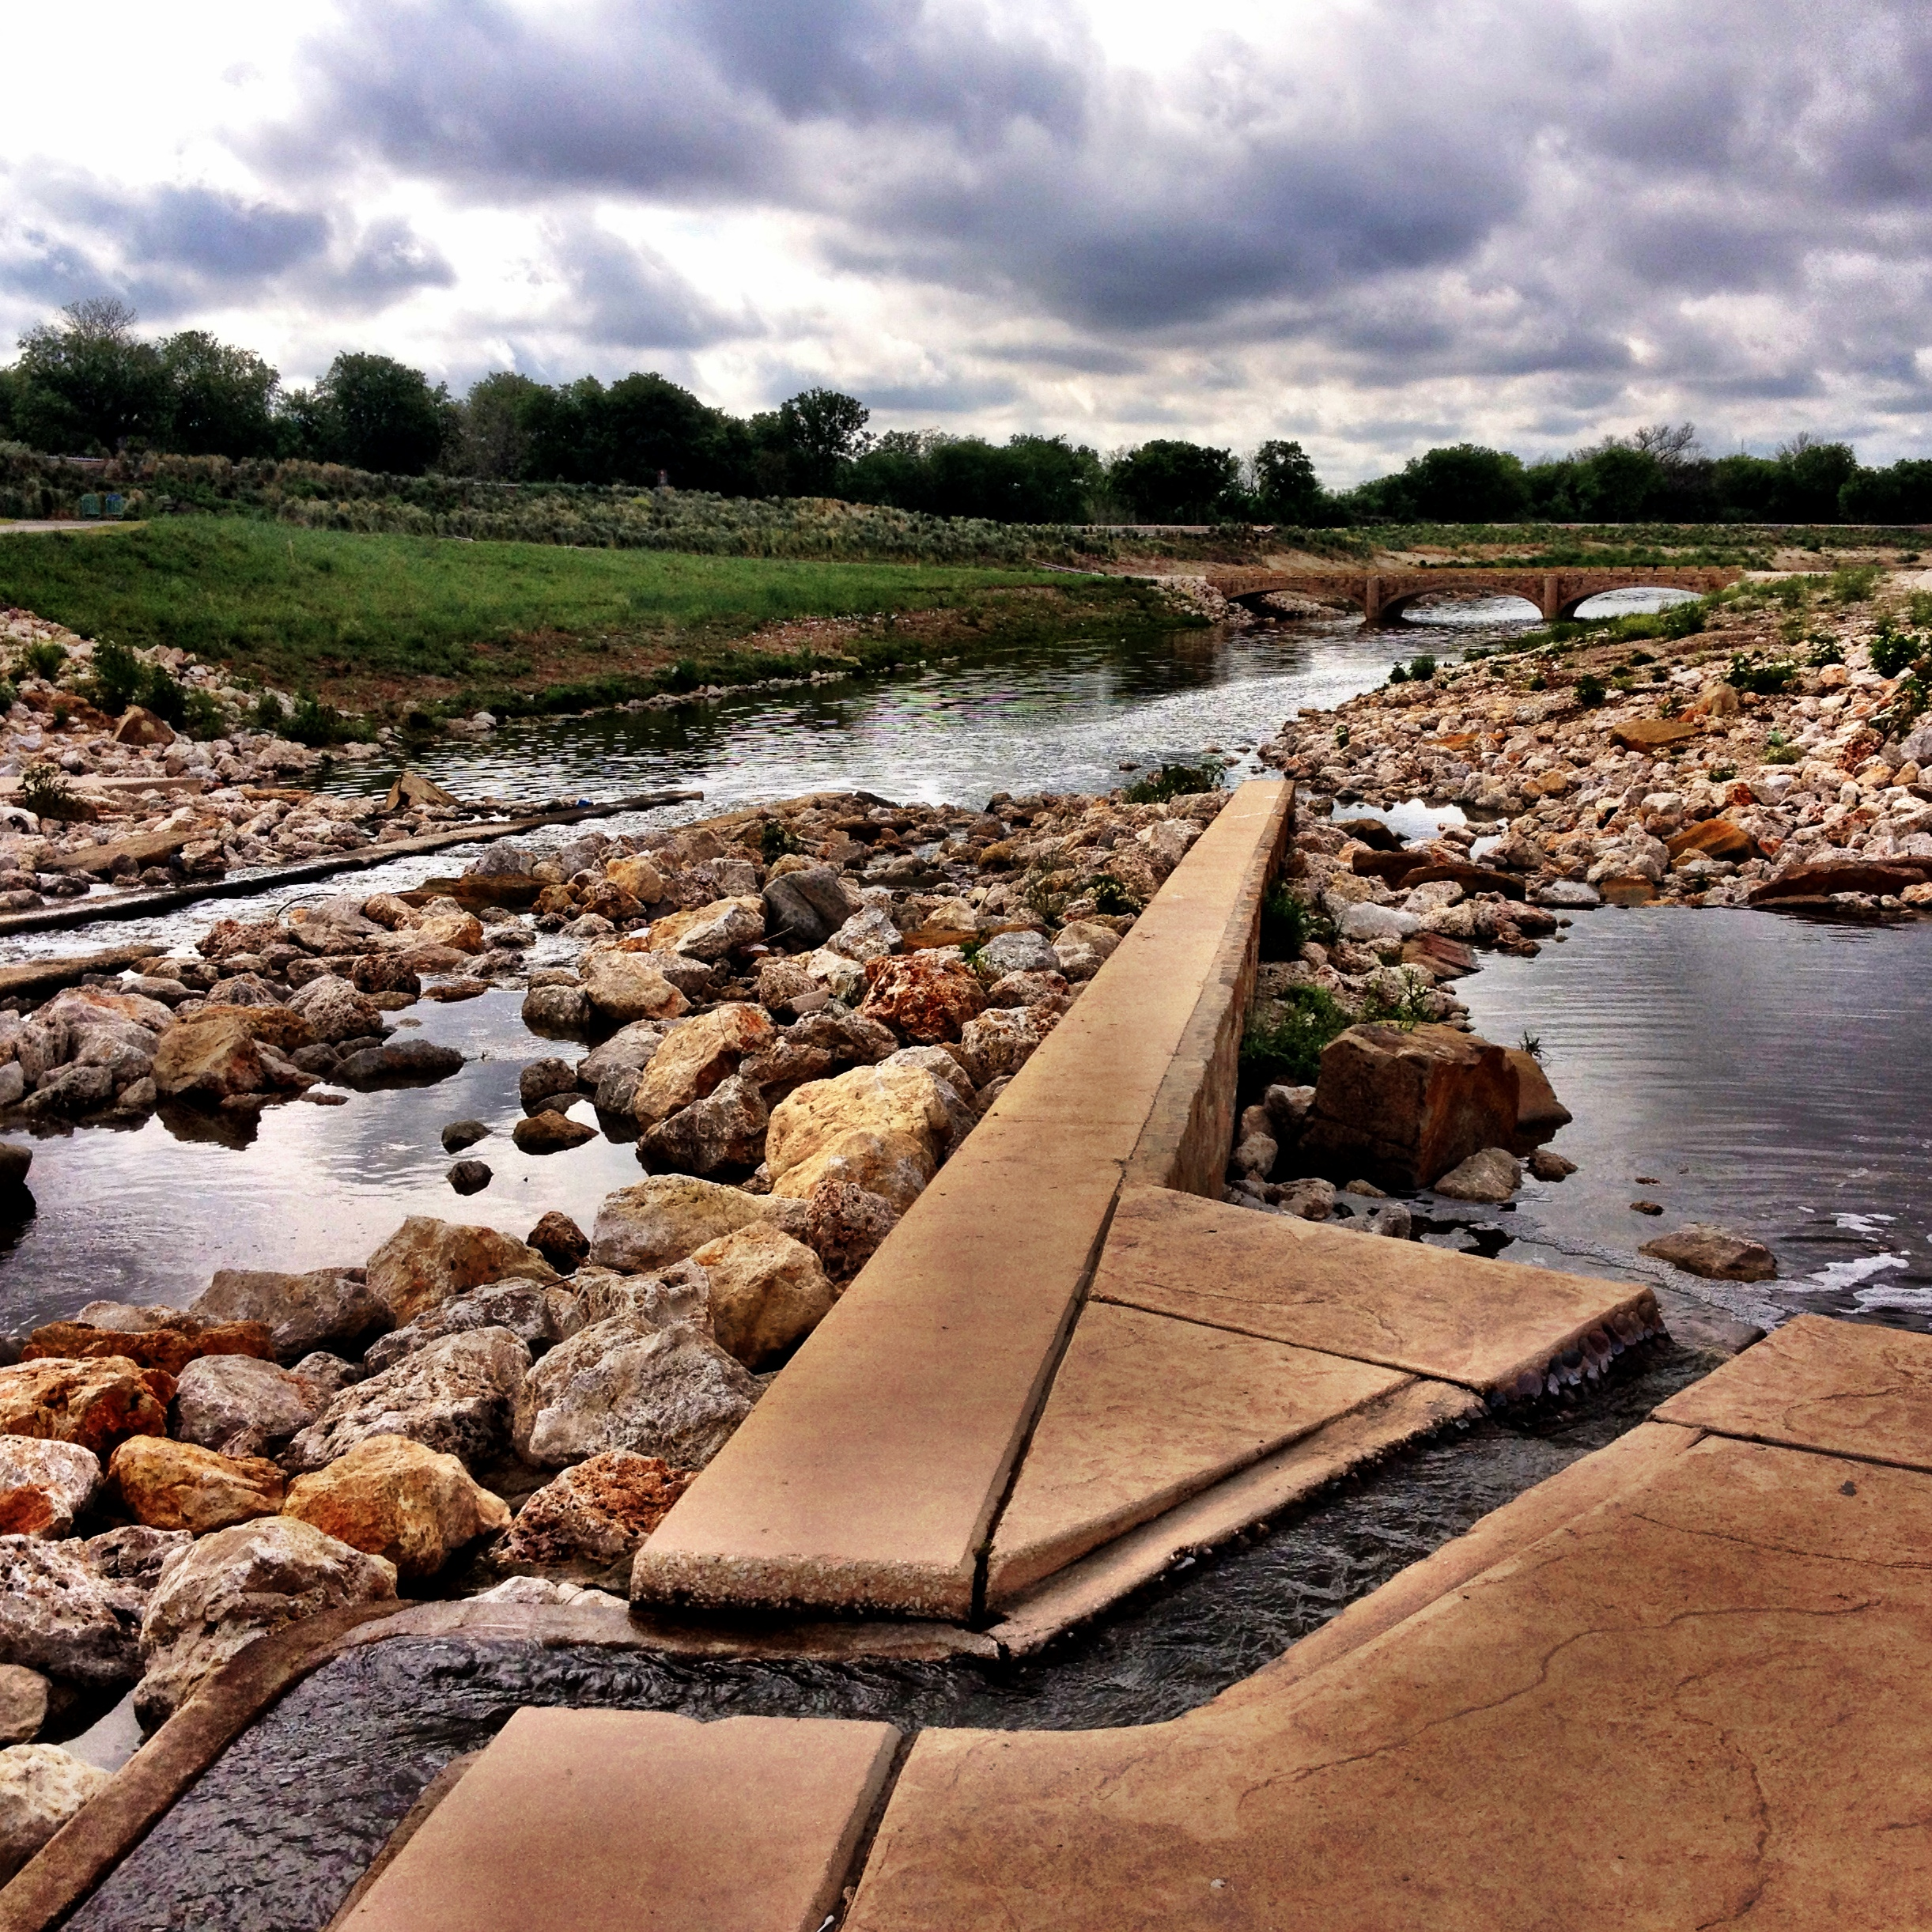 One of the multiple chutes and riffles for paddlers at Mission County Park. Photo by Jeff Reininger.